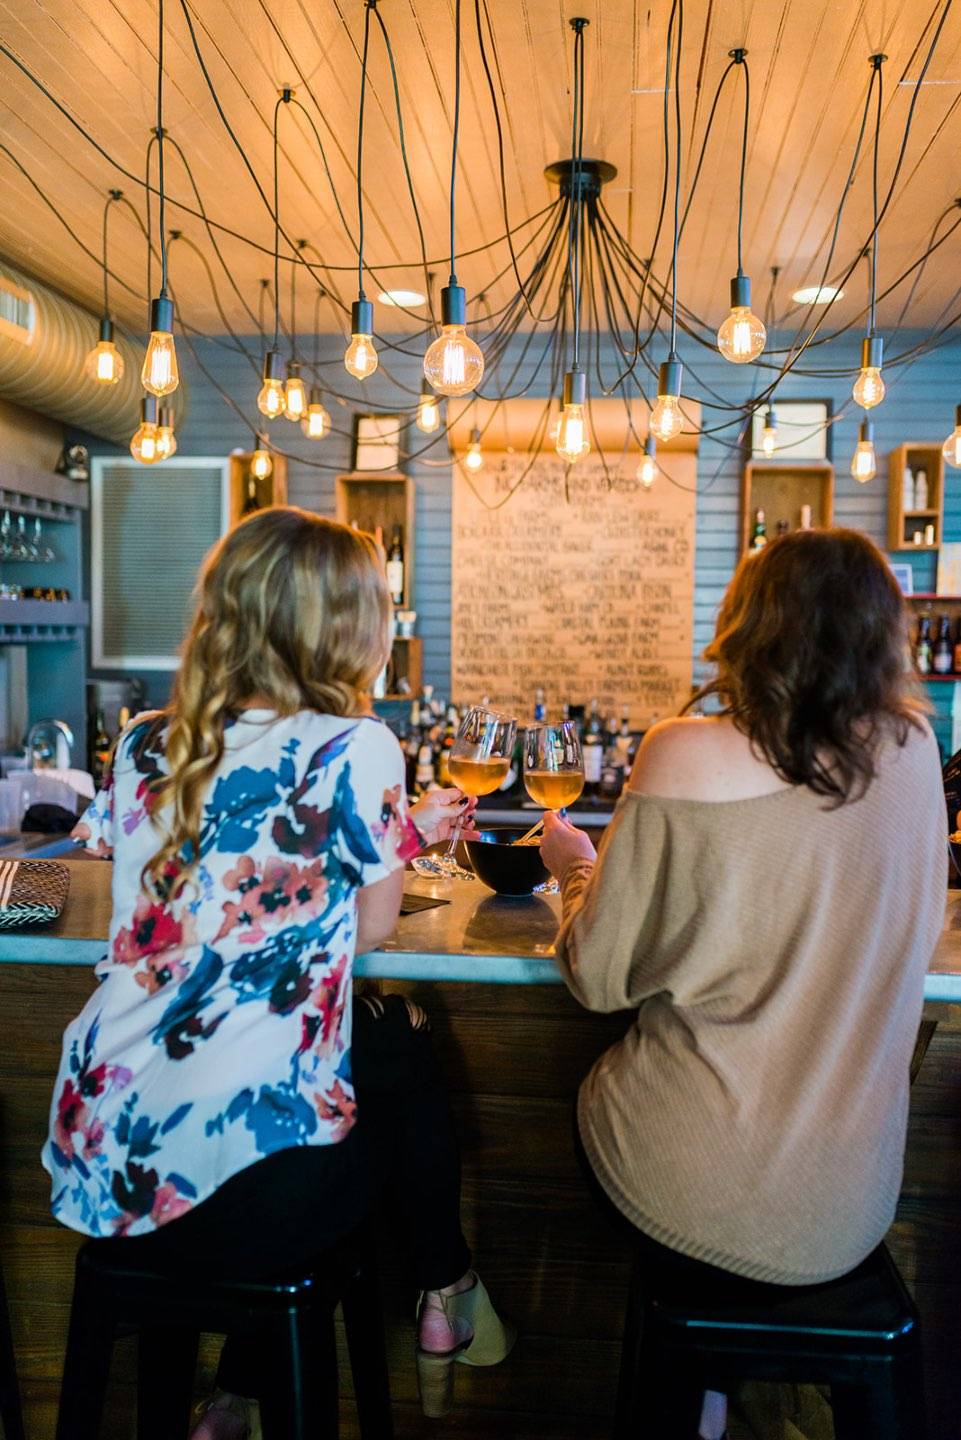 Top 5 Best Destination Restaurants in Eastern NC you Need to Try - I'm Fixin' To - @mbg0112 | Top 5 Best Destination Restaurants in Eastern NC you Need to Try by popular North Carolina blog, I'm Fixin' To: image of the bar at The Hen and the Hog.